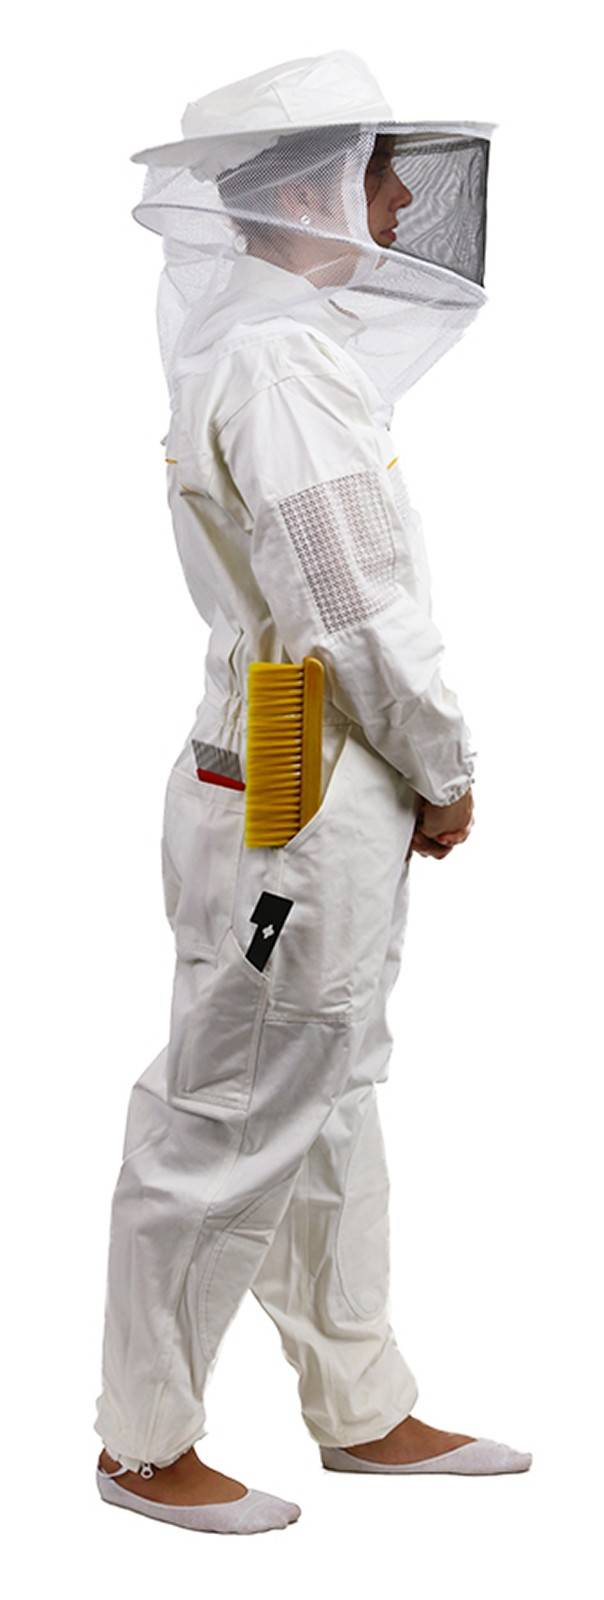 Premium Wide Brim Beesuit with YKK Zips and Canvas Carry Bag